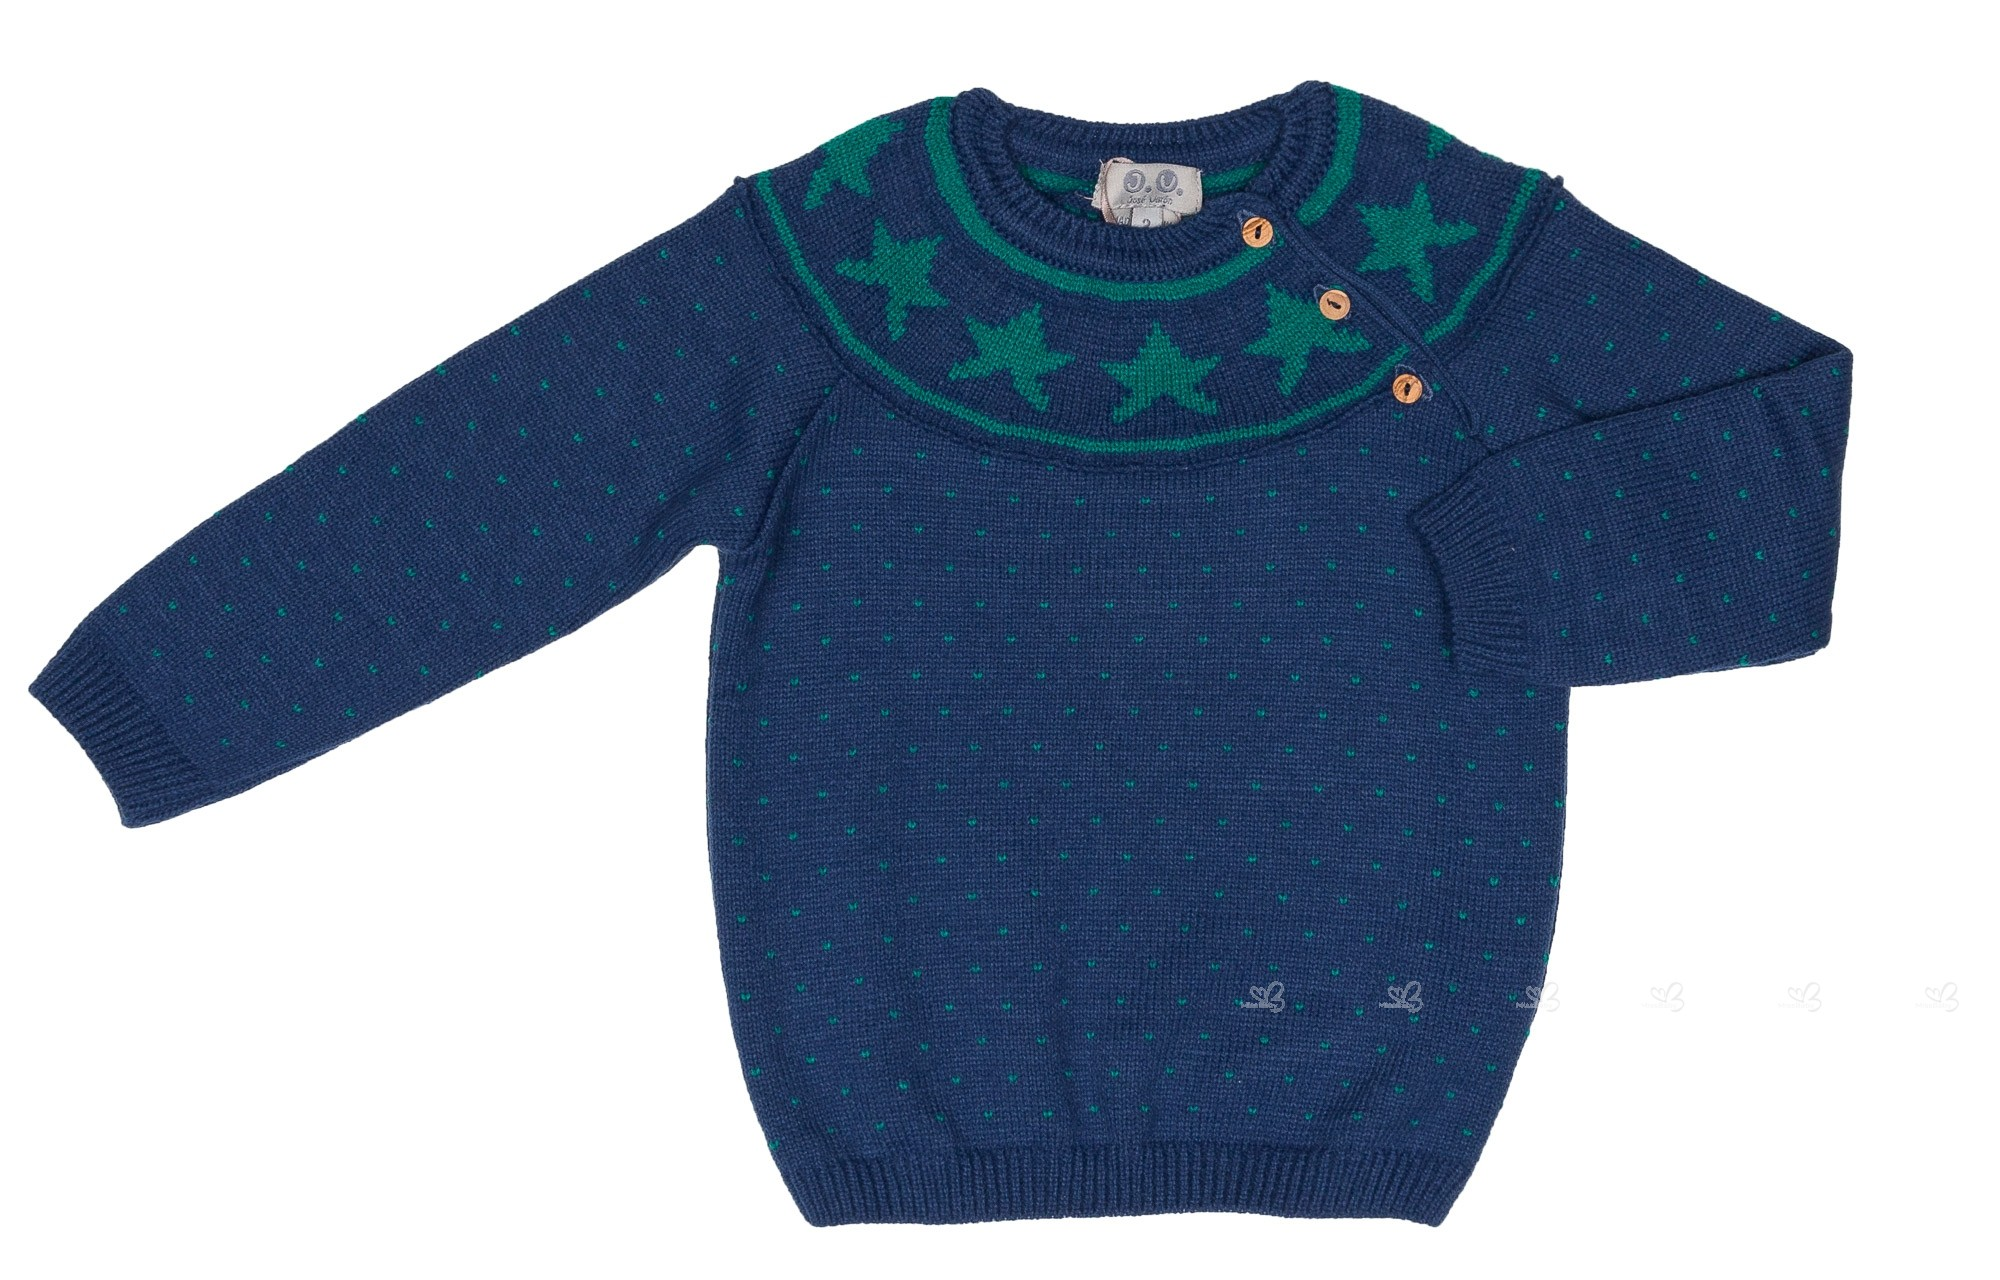 147e75379 Baby Boys Navy Blue   Green Stars Knitted Sweater